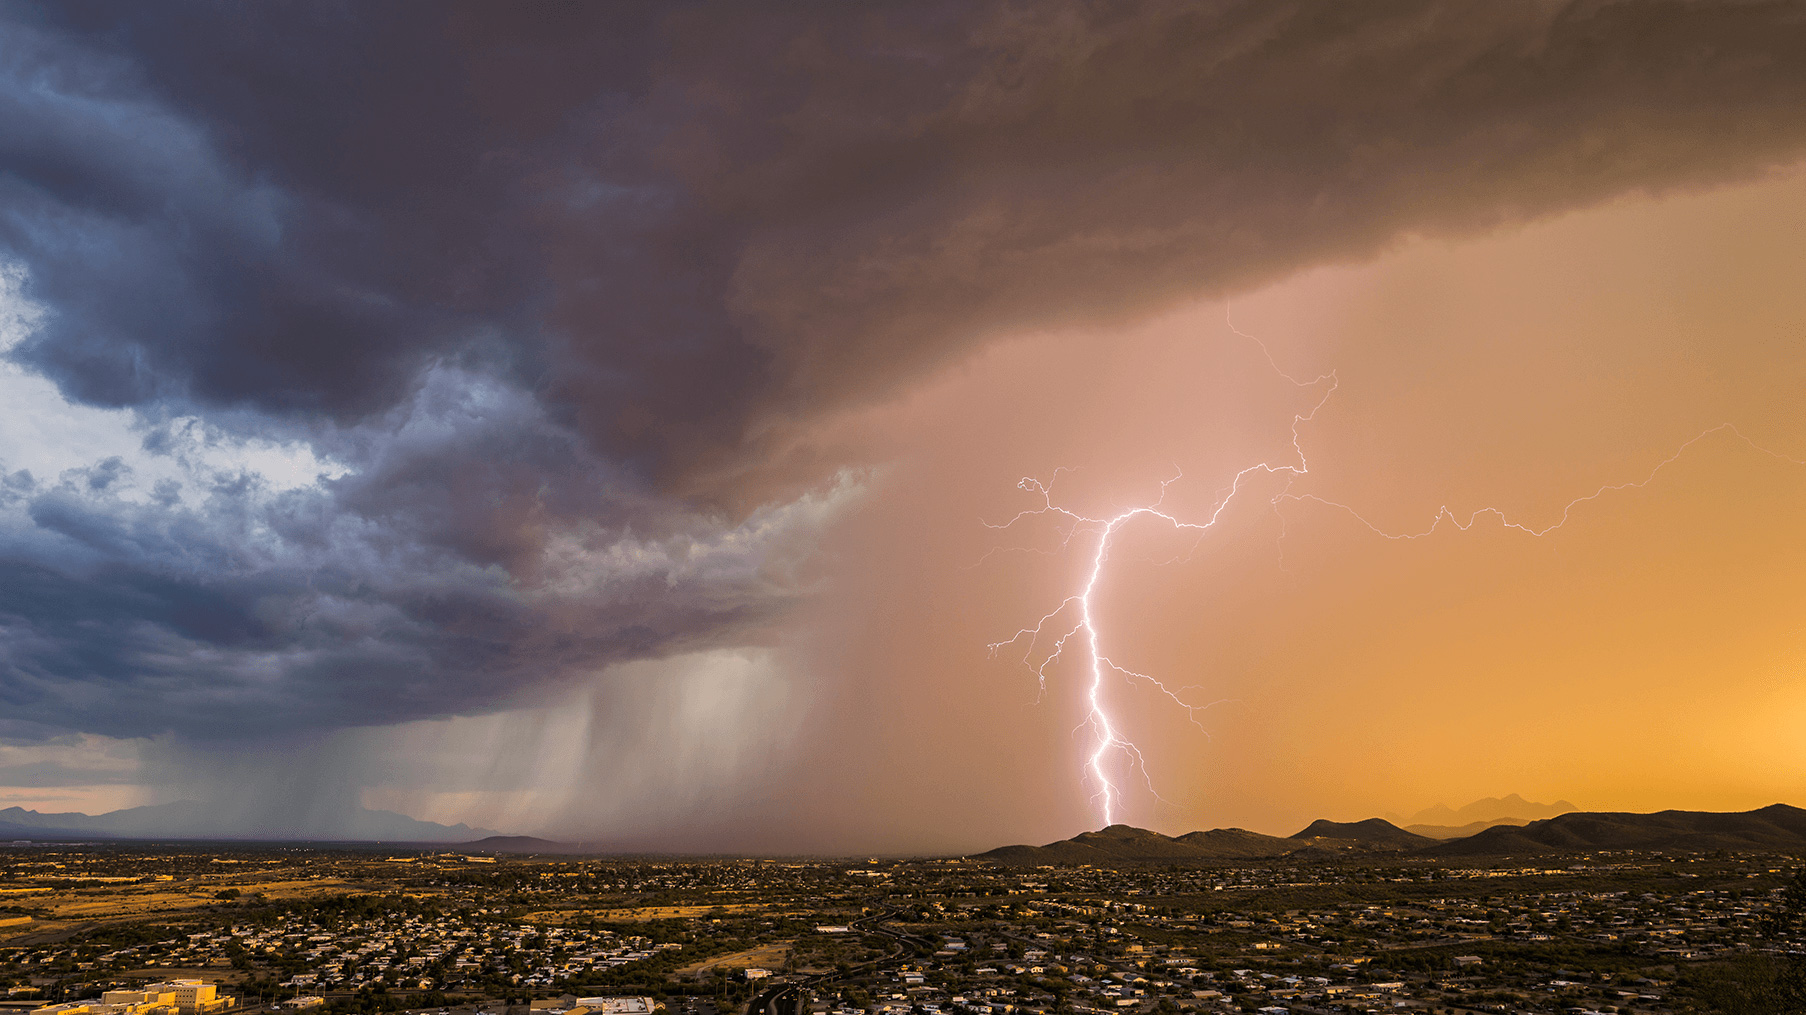 Lightning strike during a valley storm.